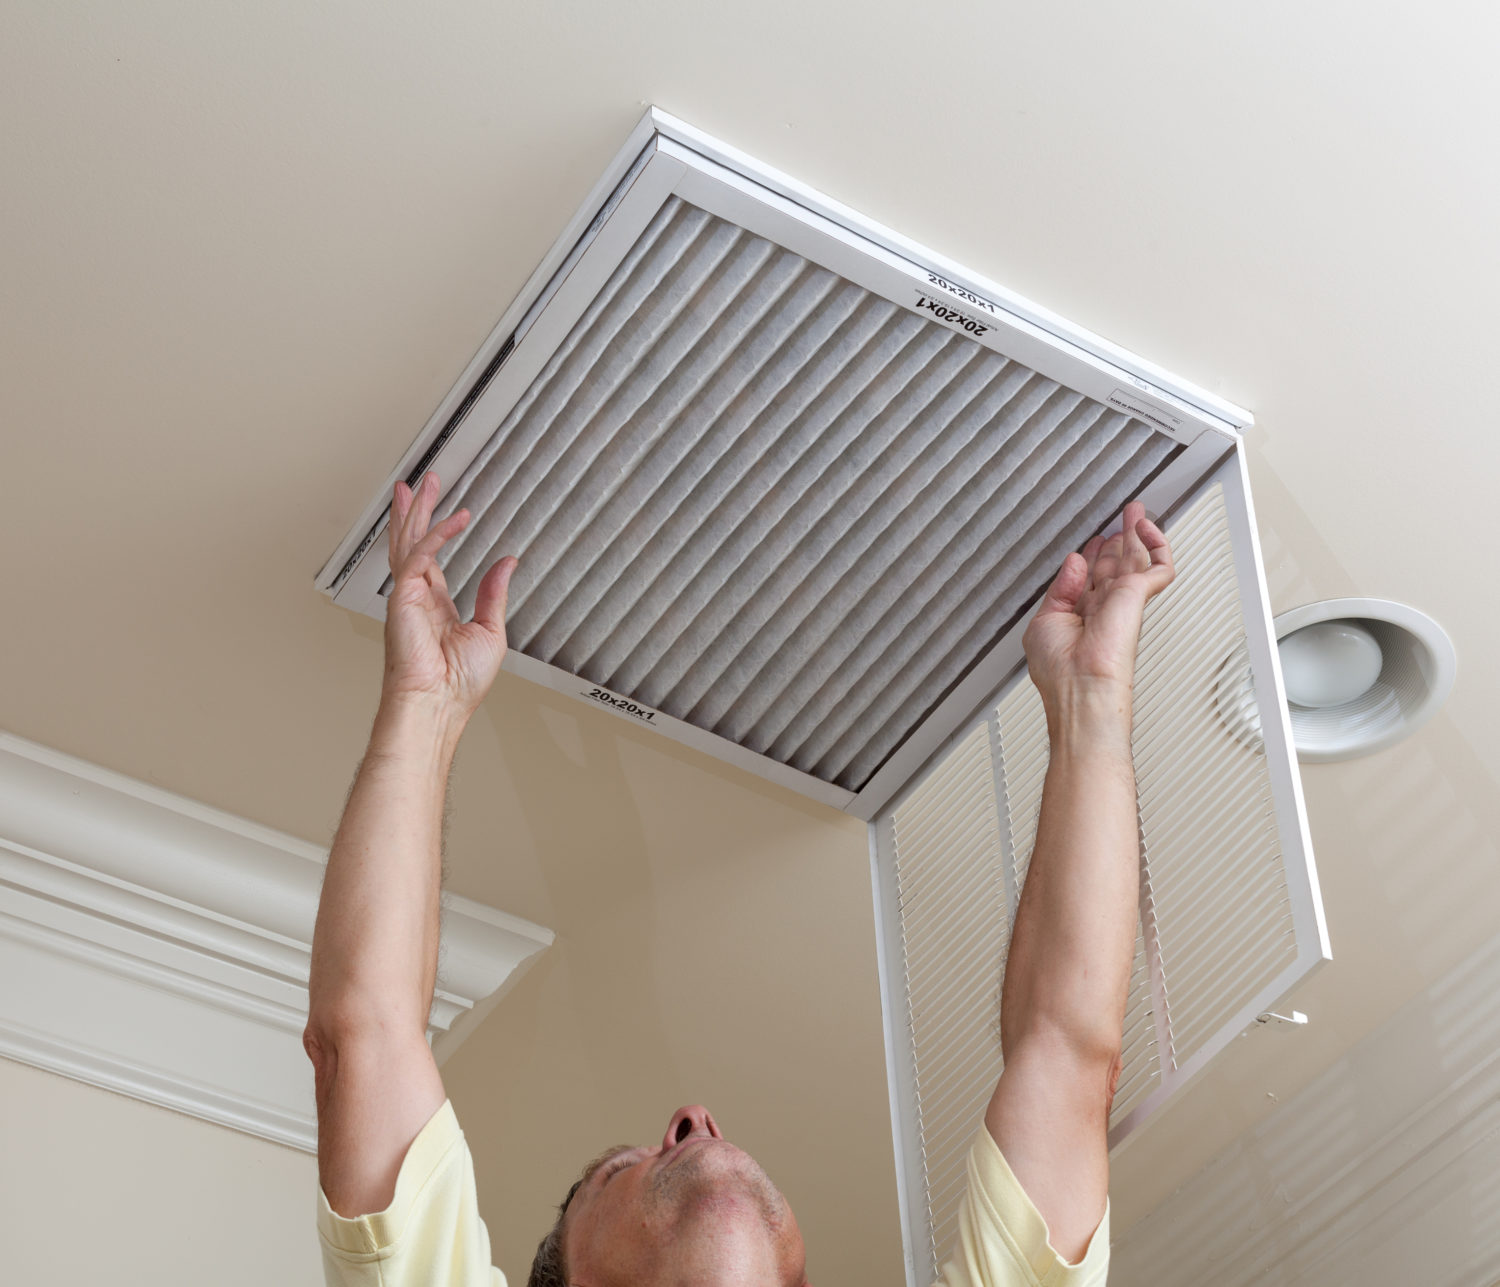 Changing air conditioning filter in ceiling